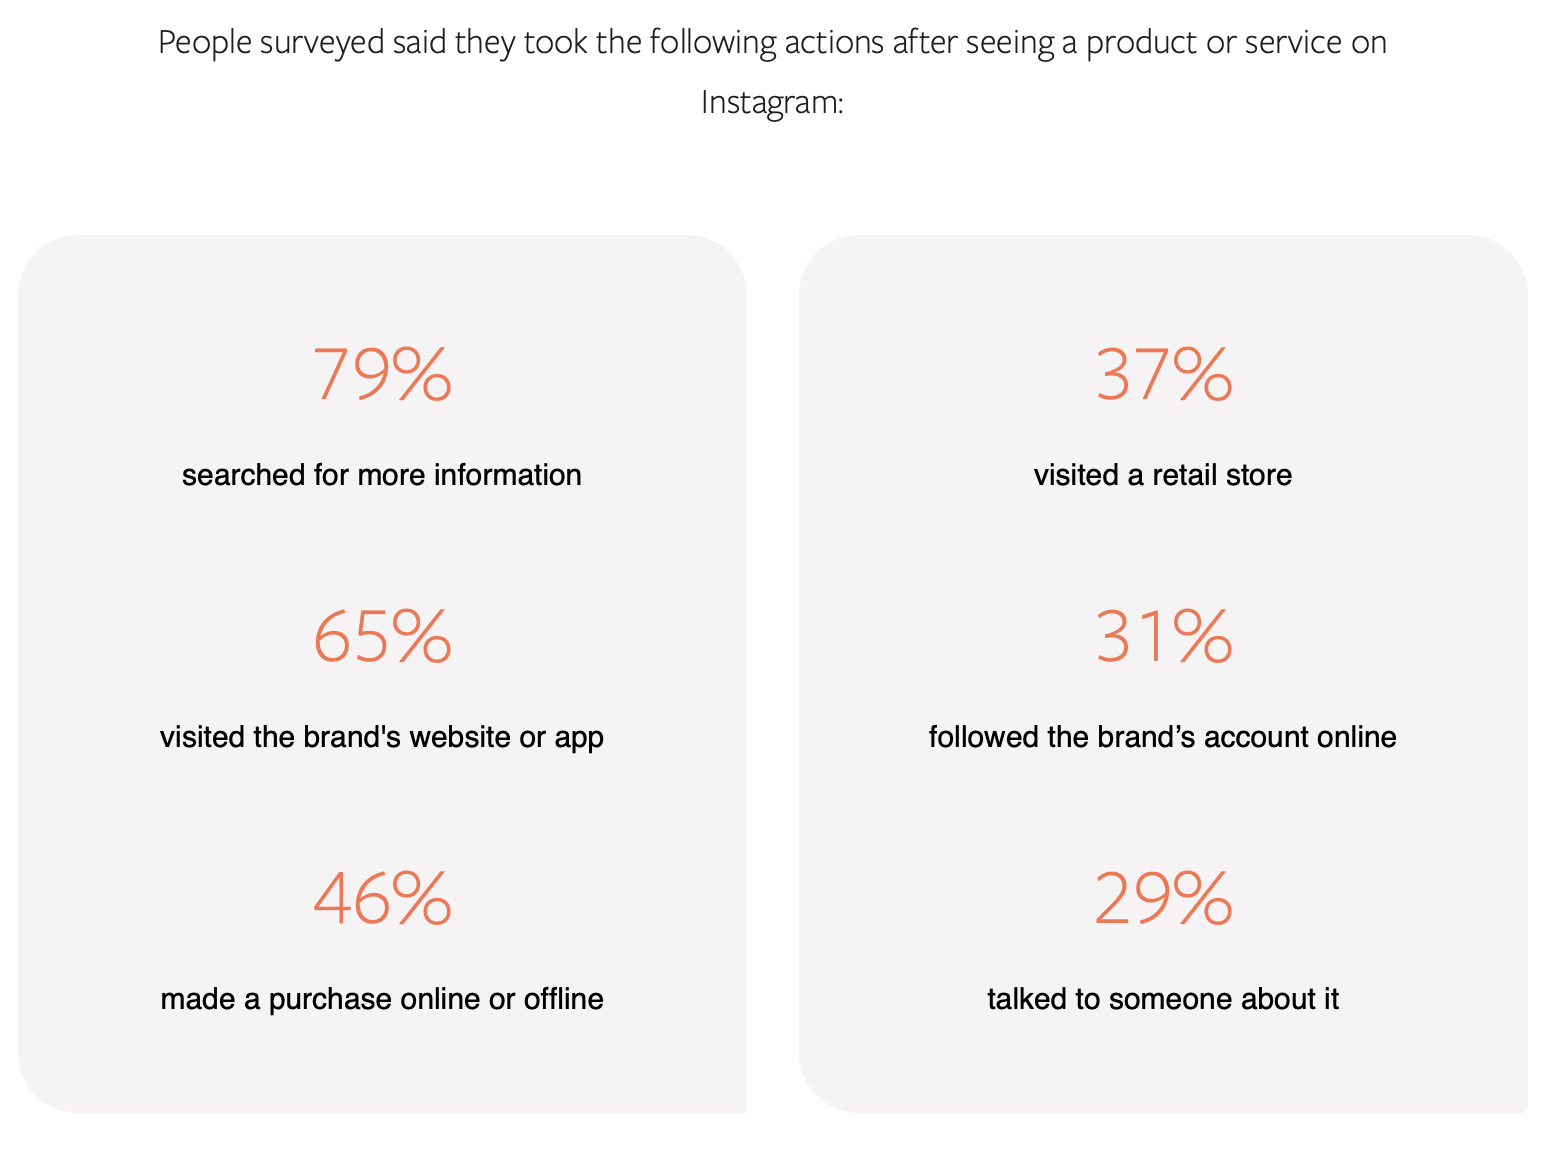 consumer behaviors after seeing a product or service on Instagram